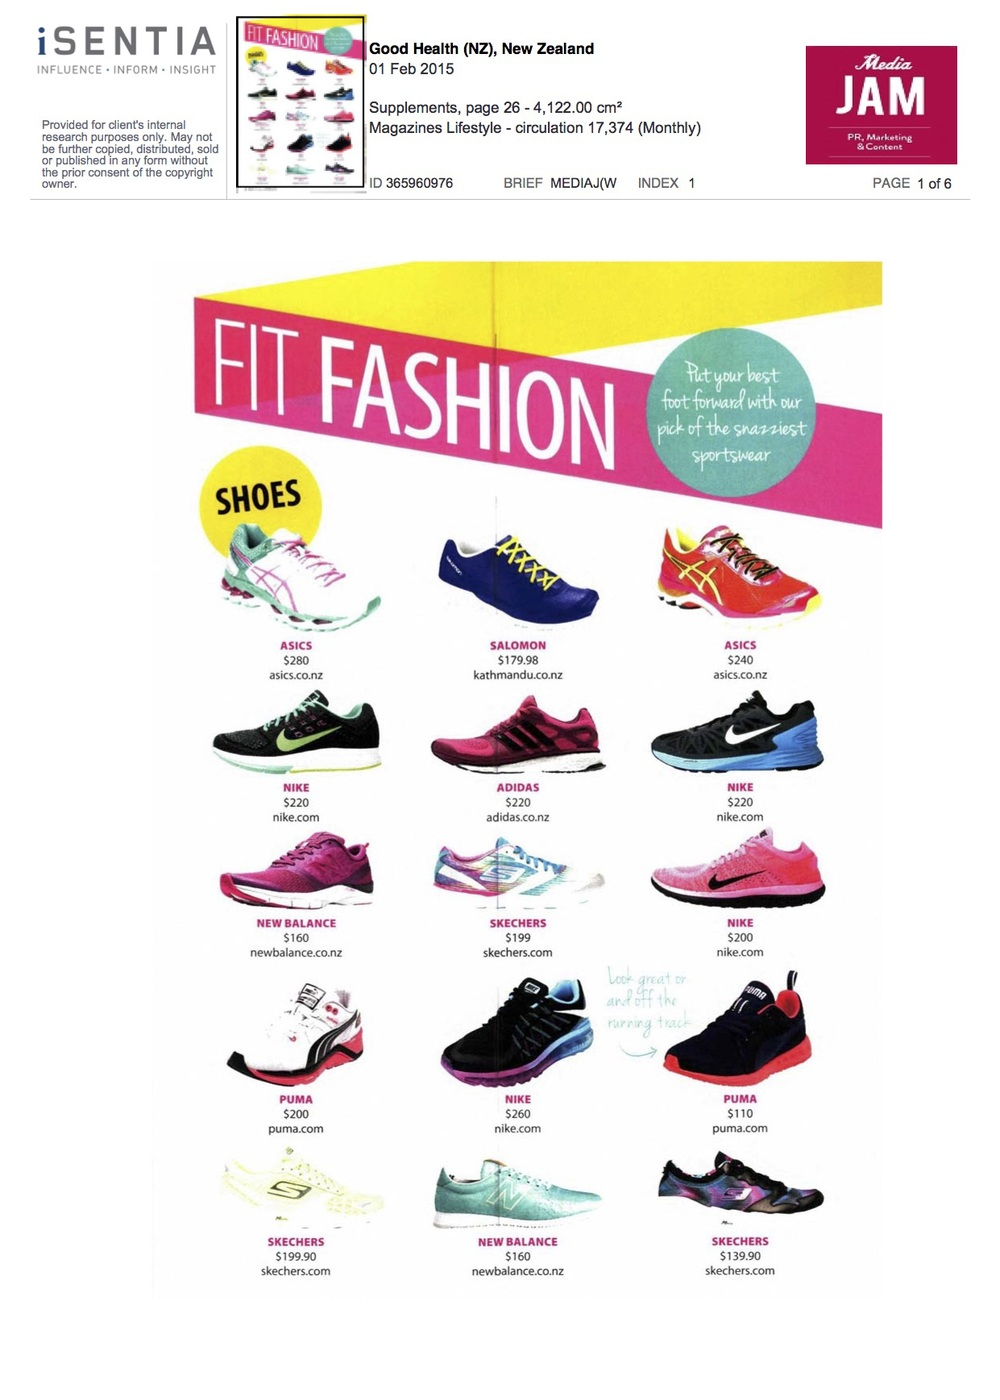 Good Health Magazine Feb 2015 Fit Fashion Featuring New Balance.jpg